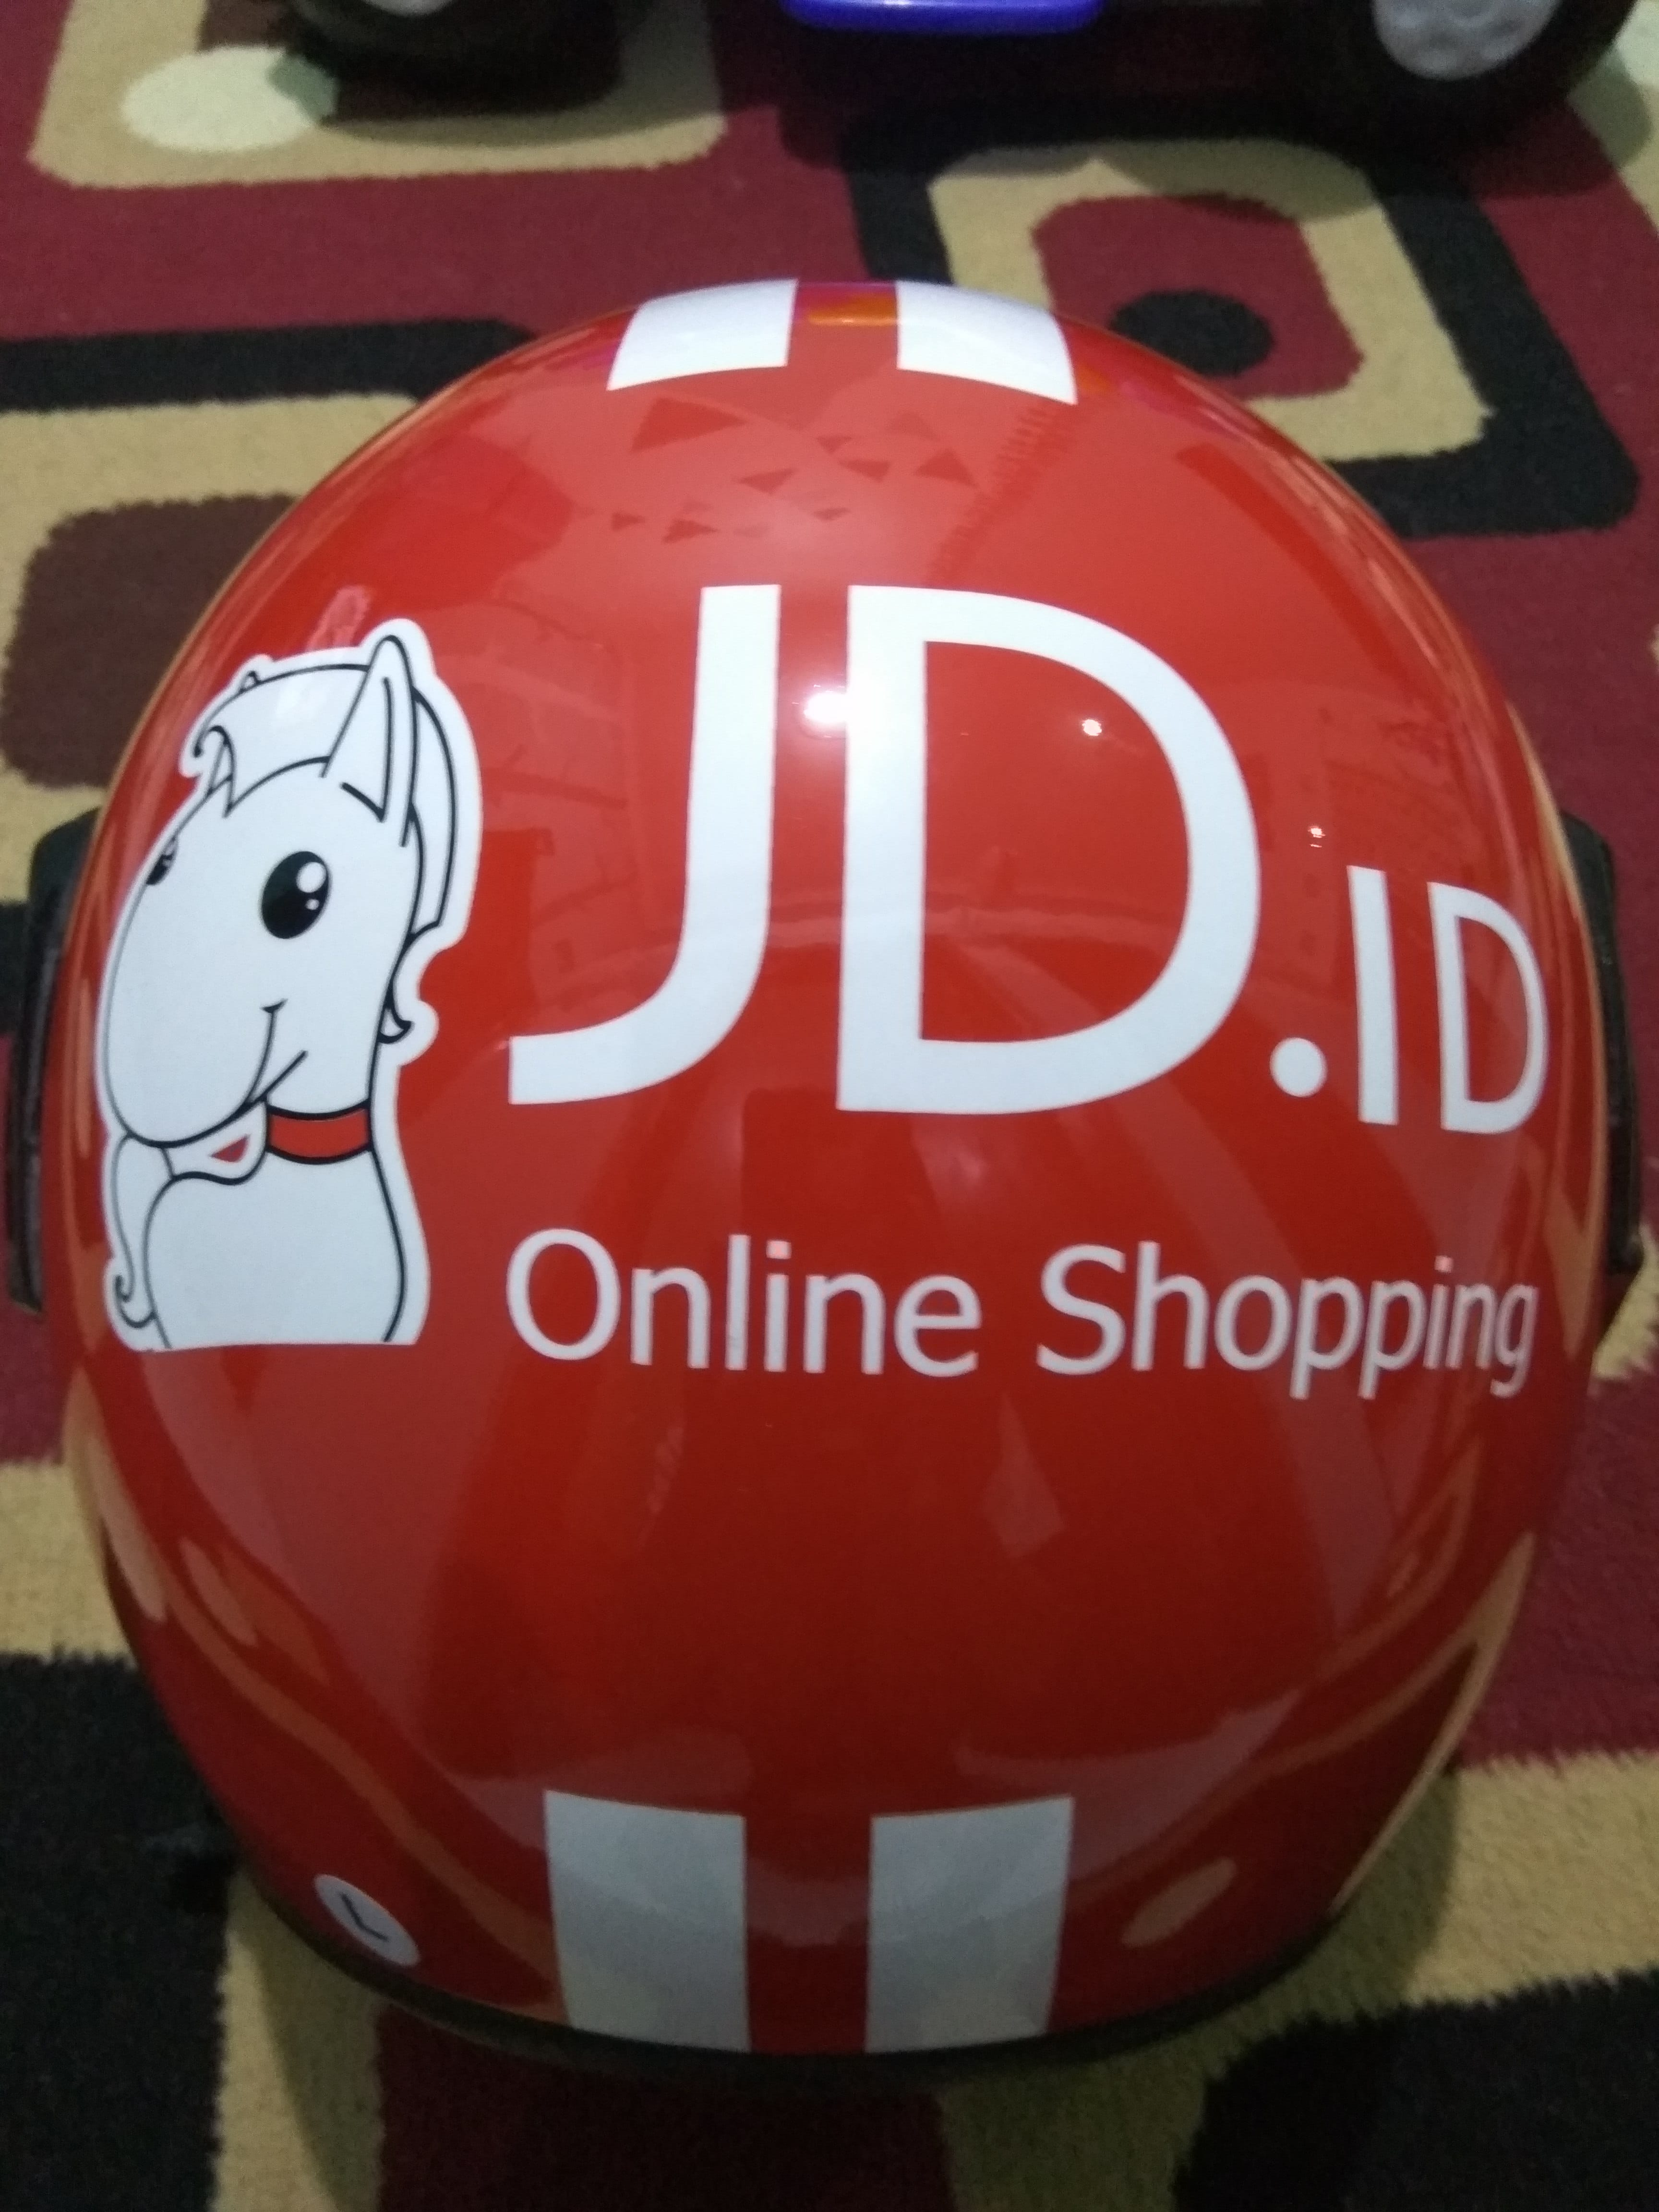 Review Helm Jd.id